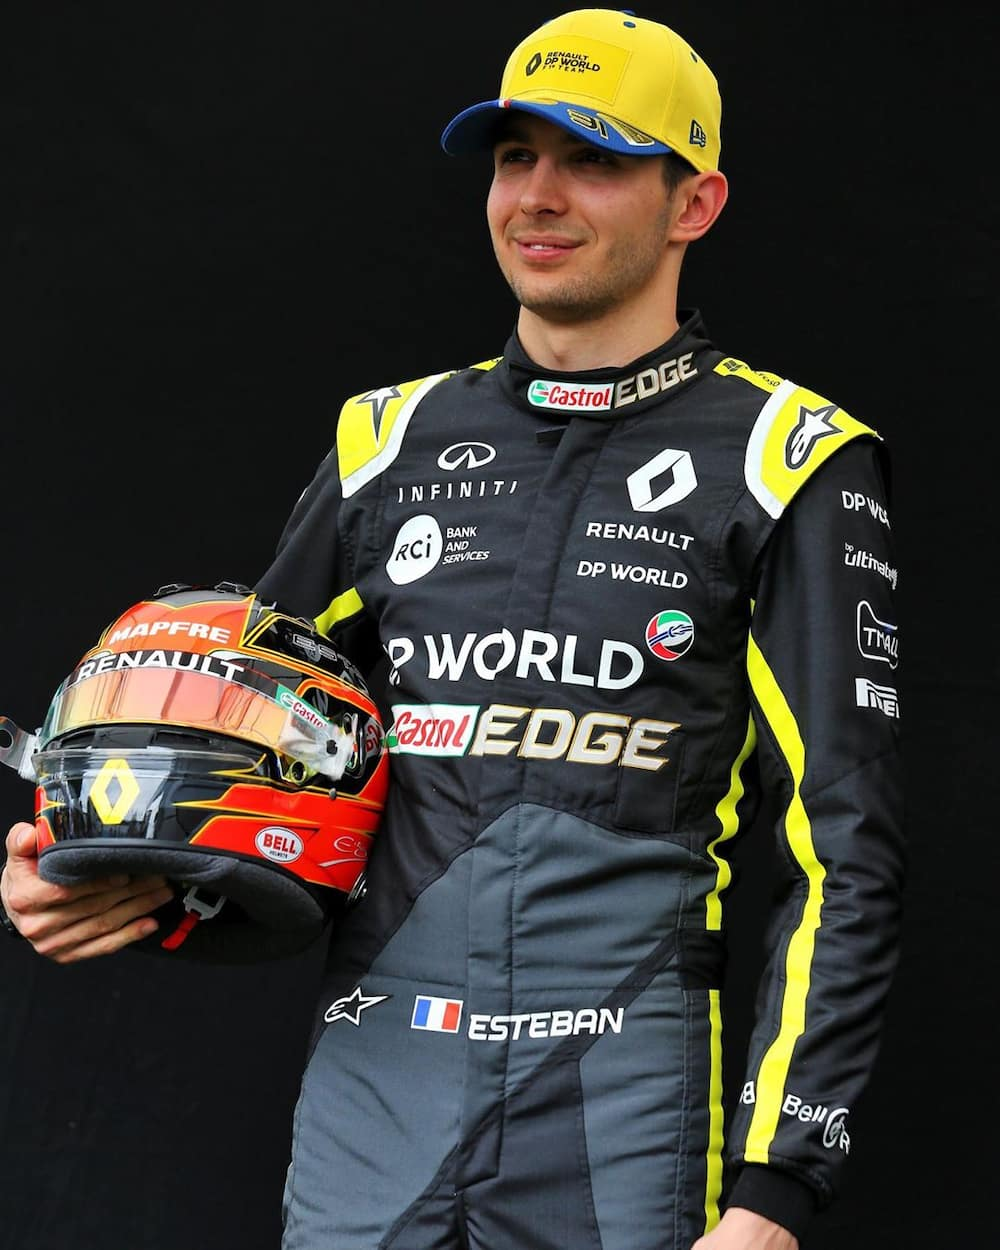 f1 drivers and teams 2020